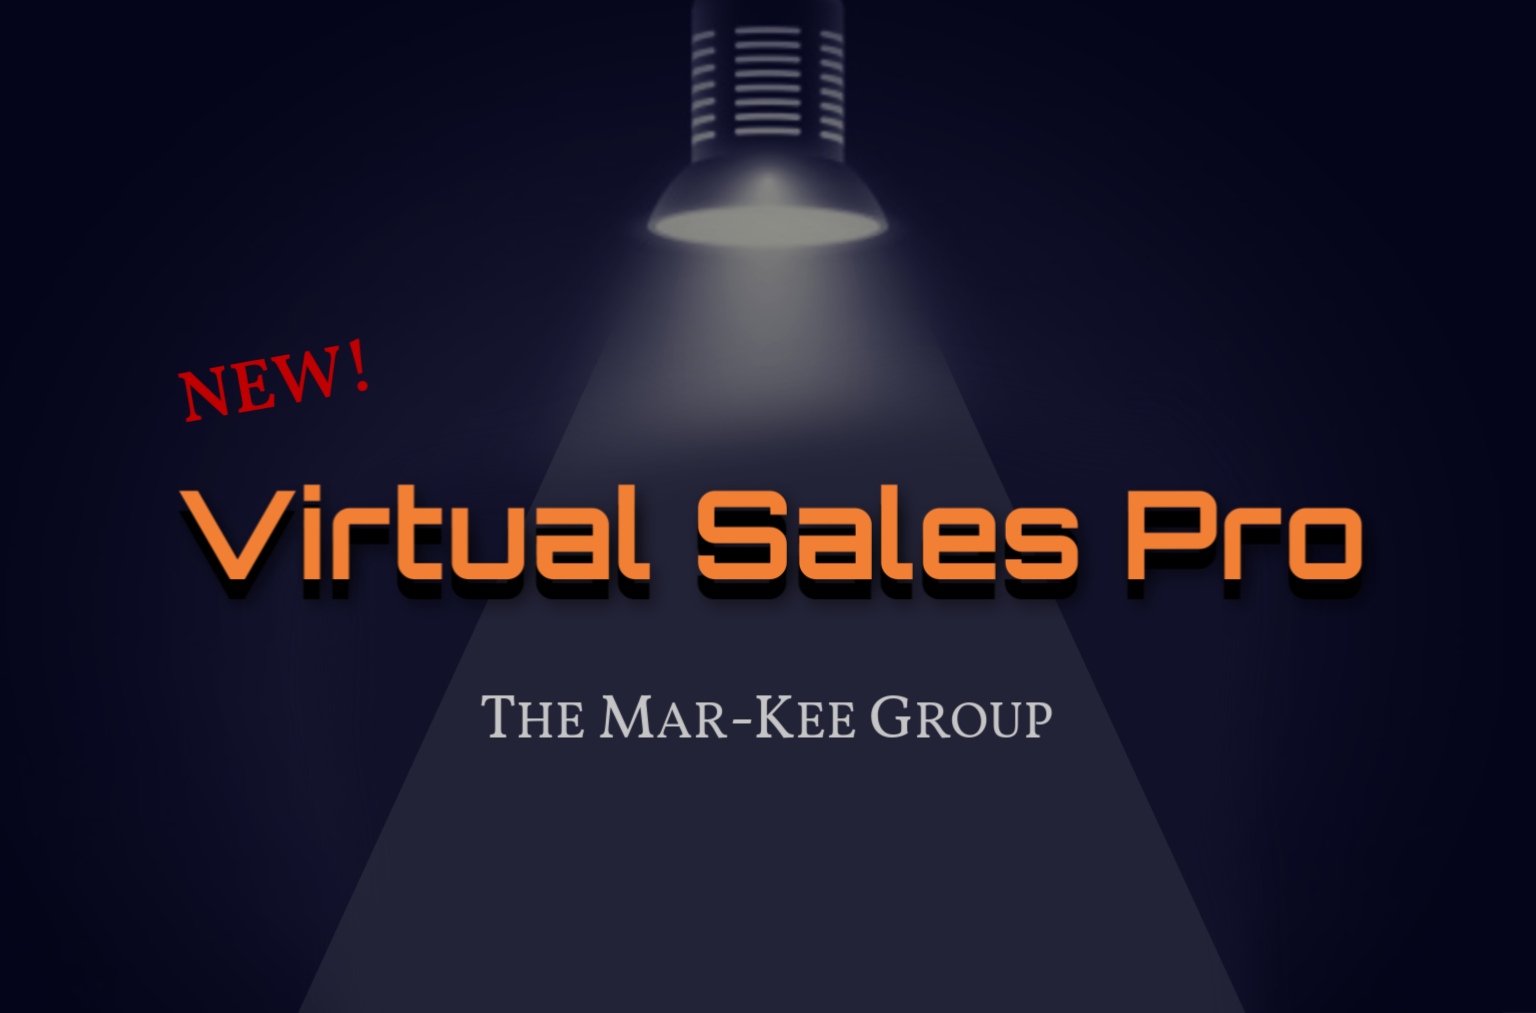 NEW! Virtual Sales Pro by the Mar-Kee Group